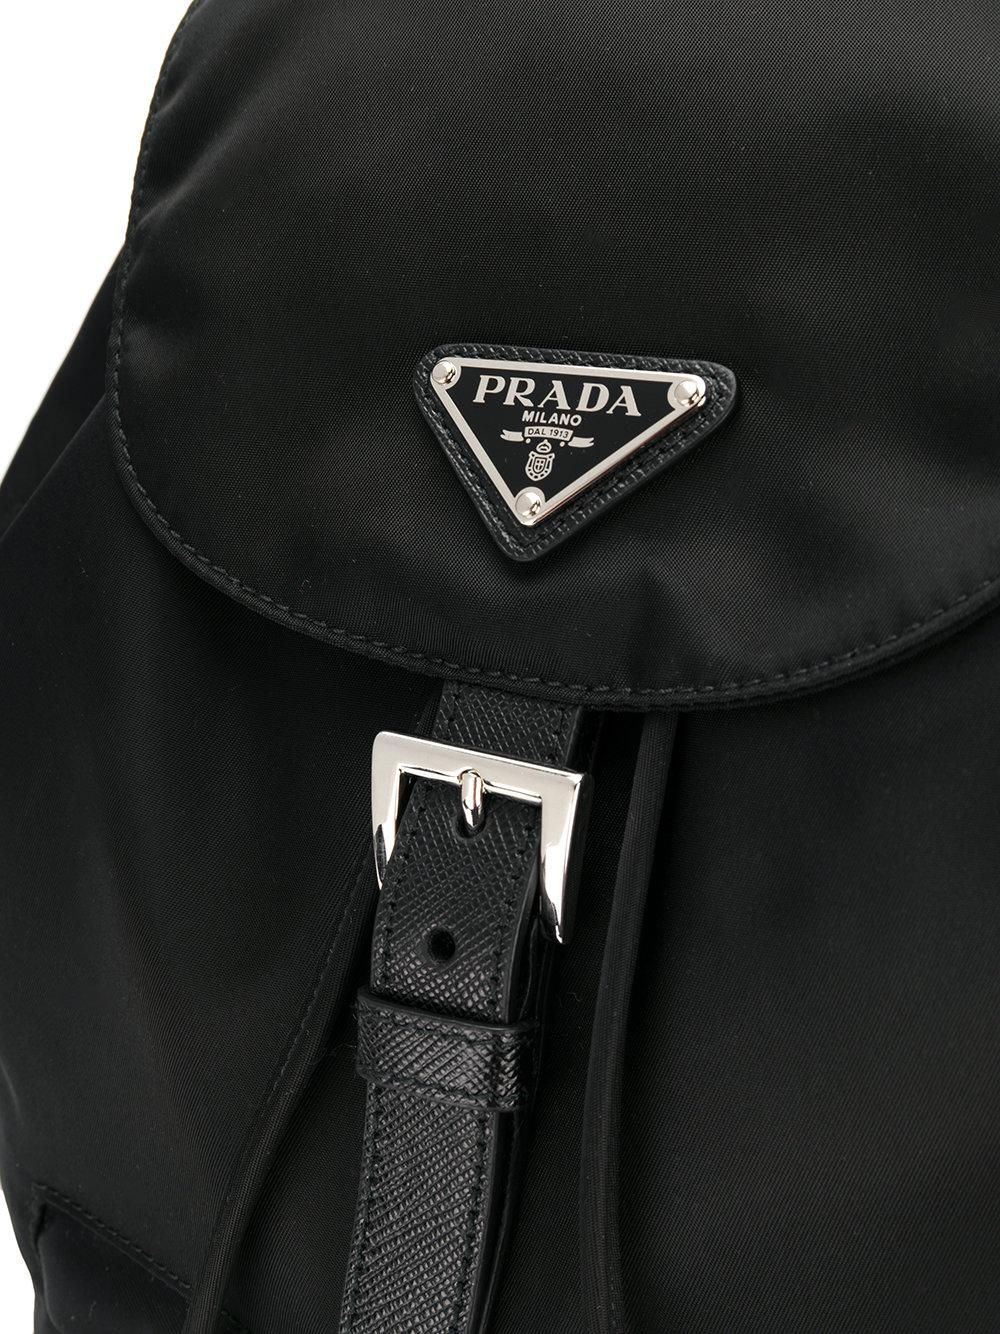 d1f576e061f3 ... cheap prada black fabric backpack lyst. view fullscreen 3f24d 4ed8b